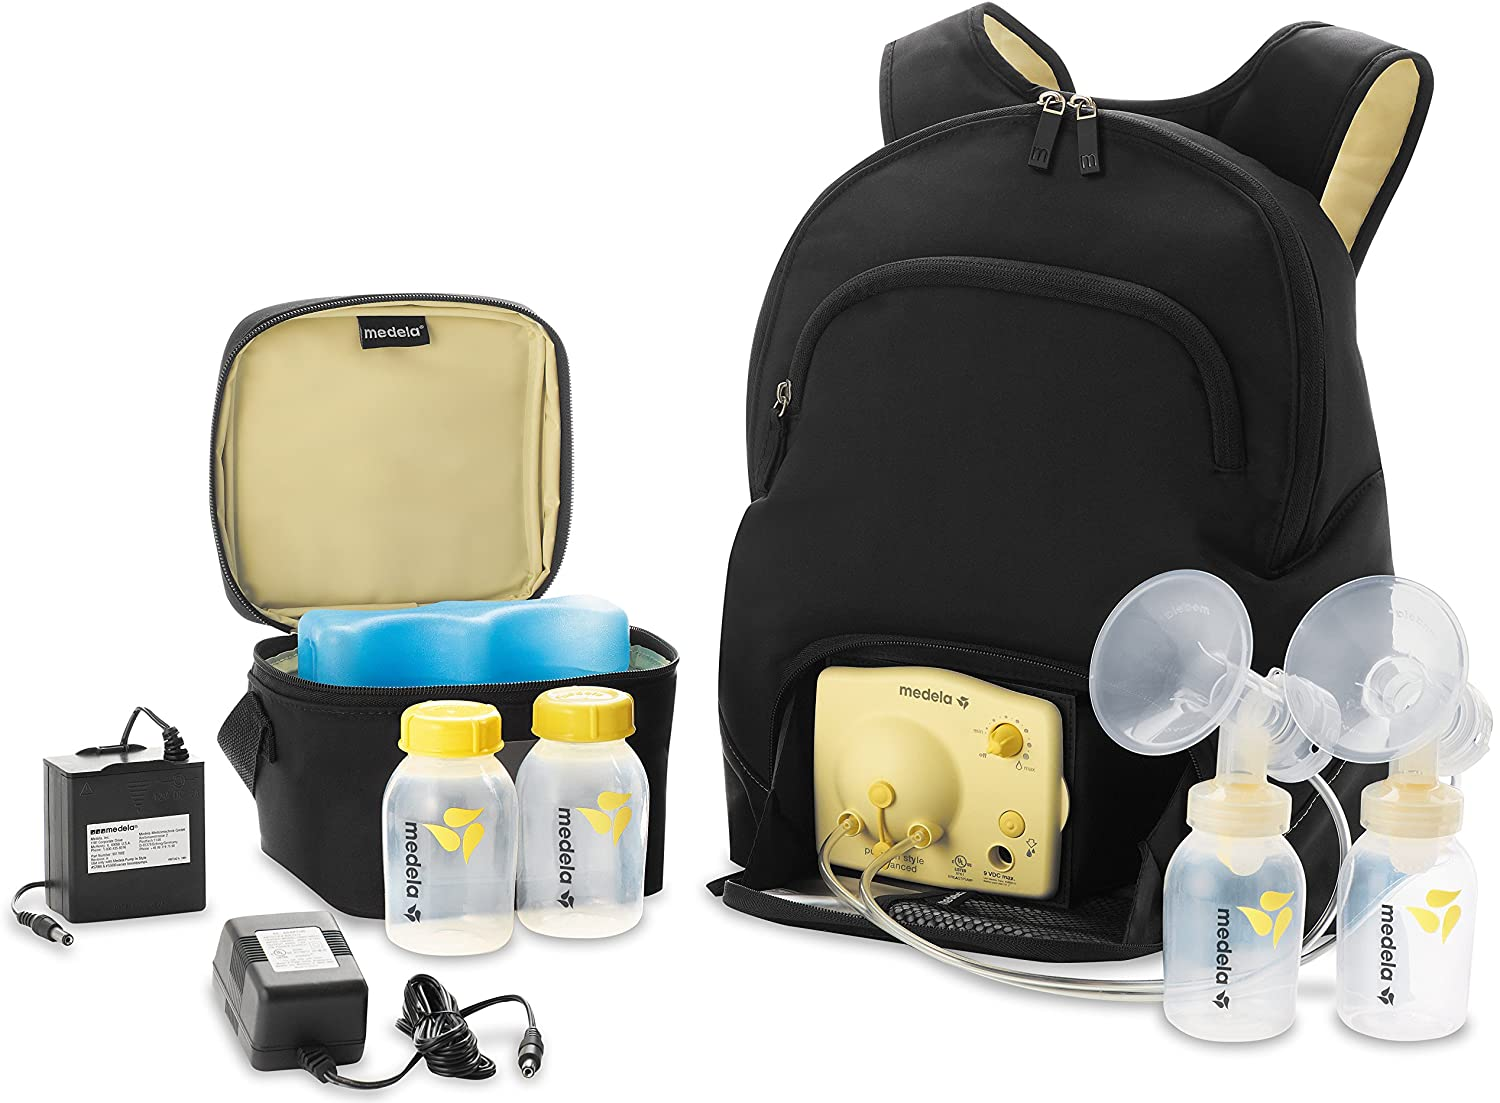 Buying Guide to the Medela Pump in Style Breastpump